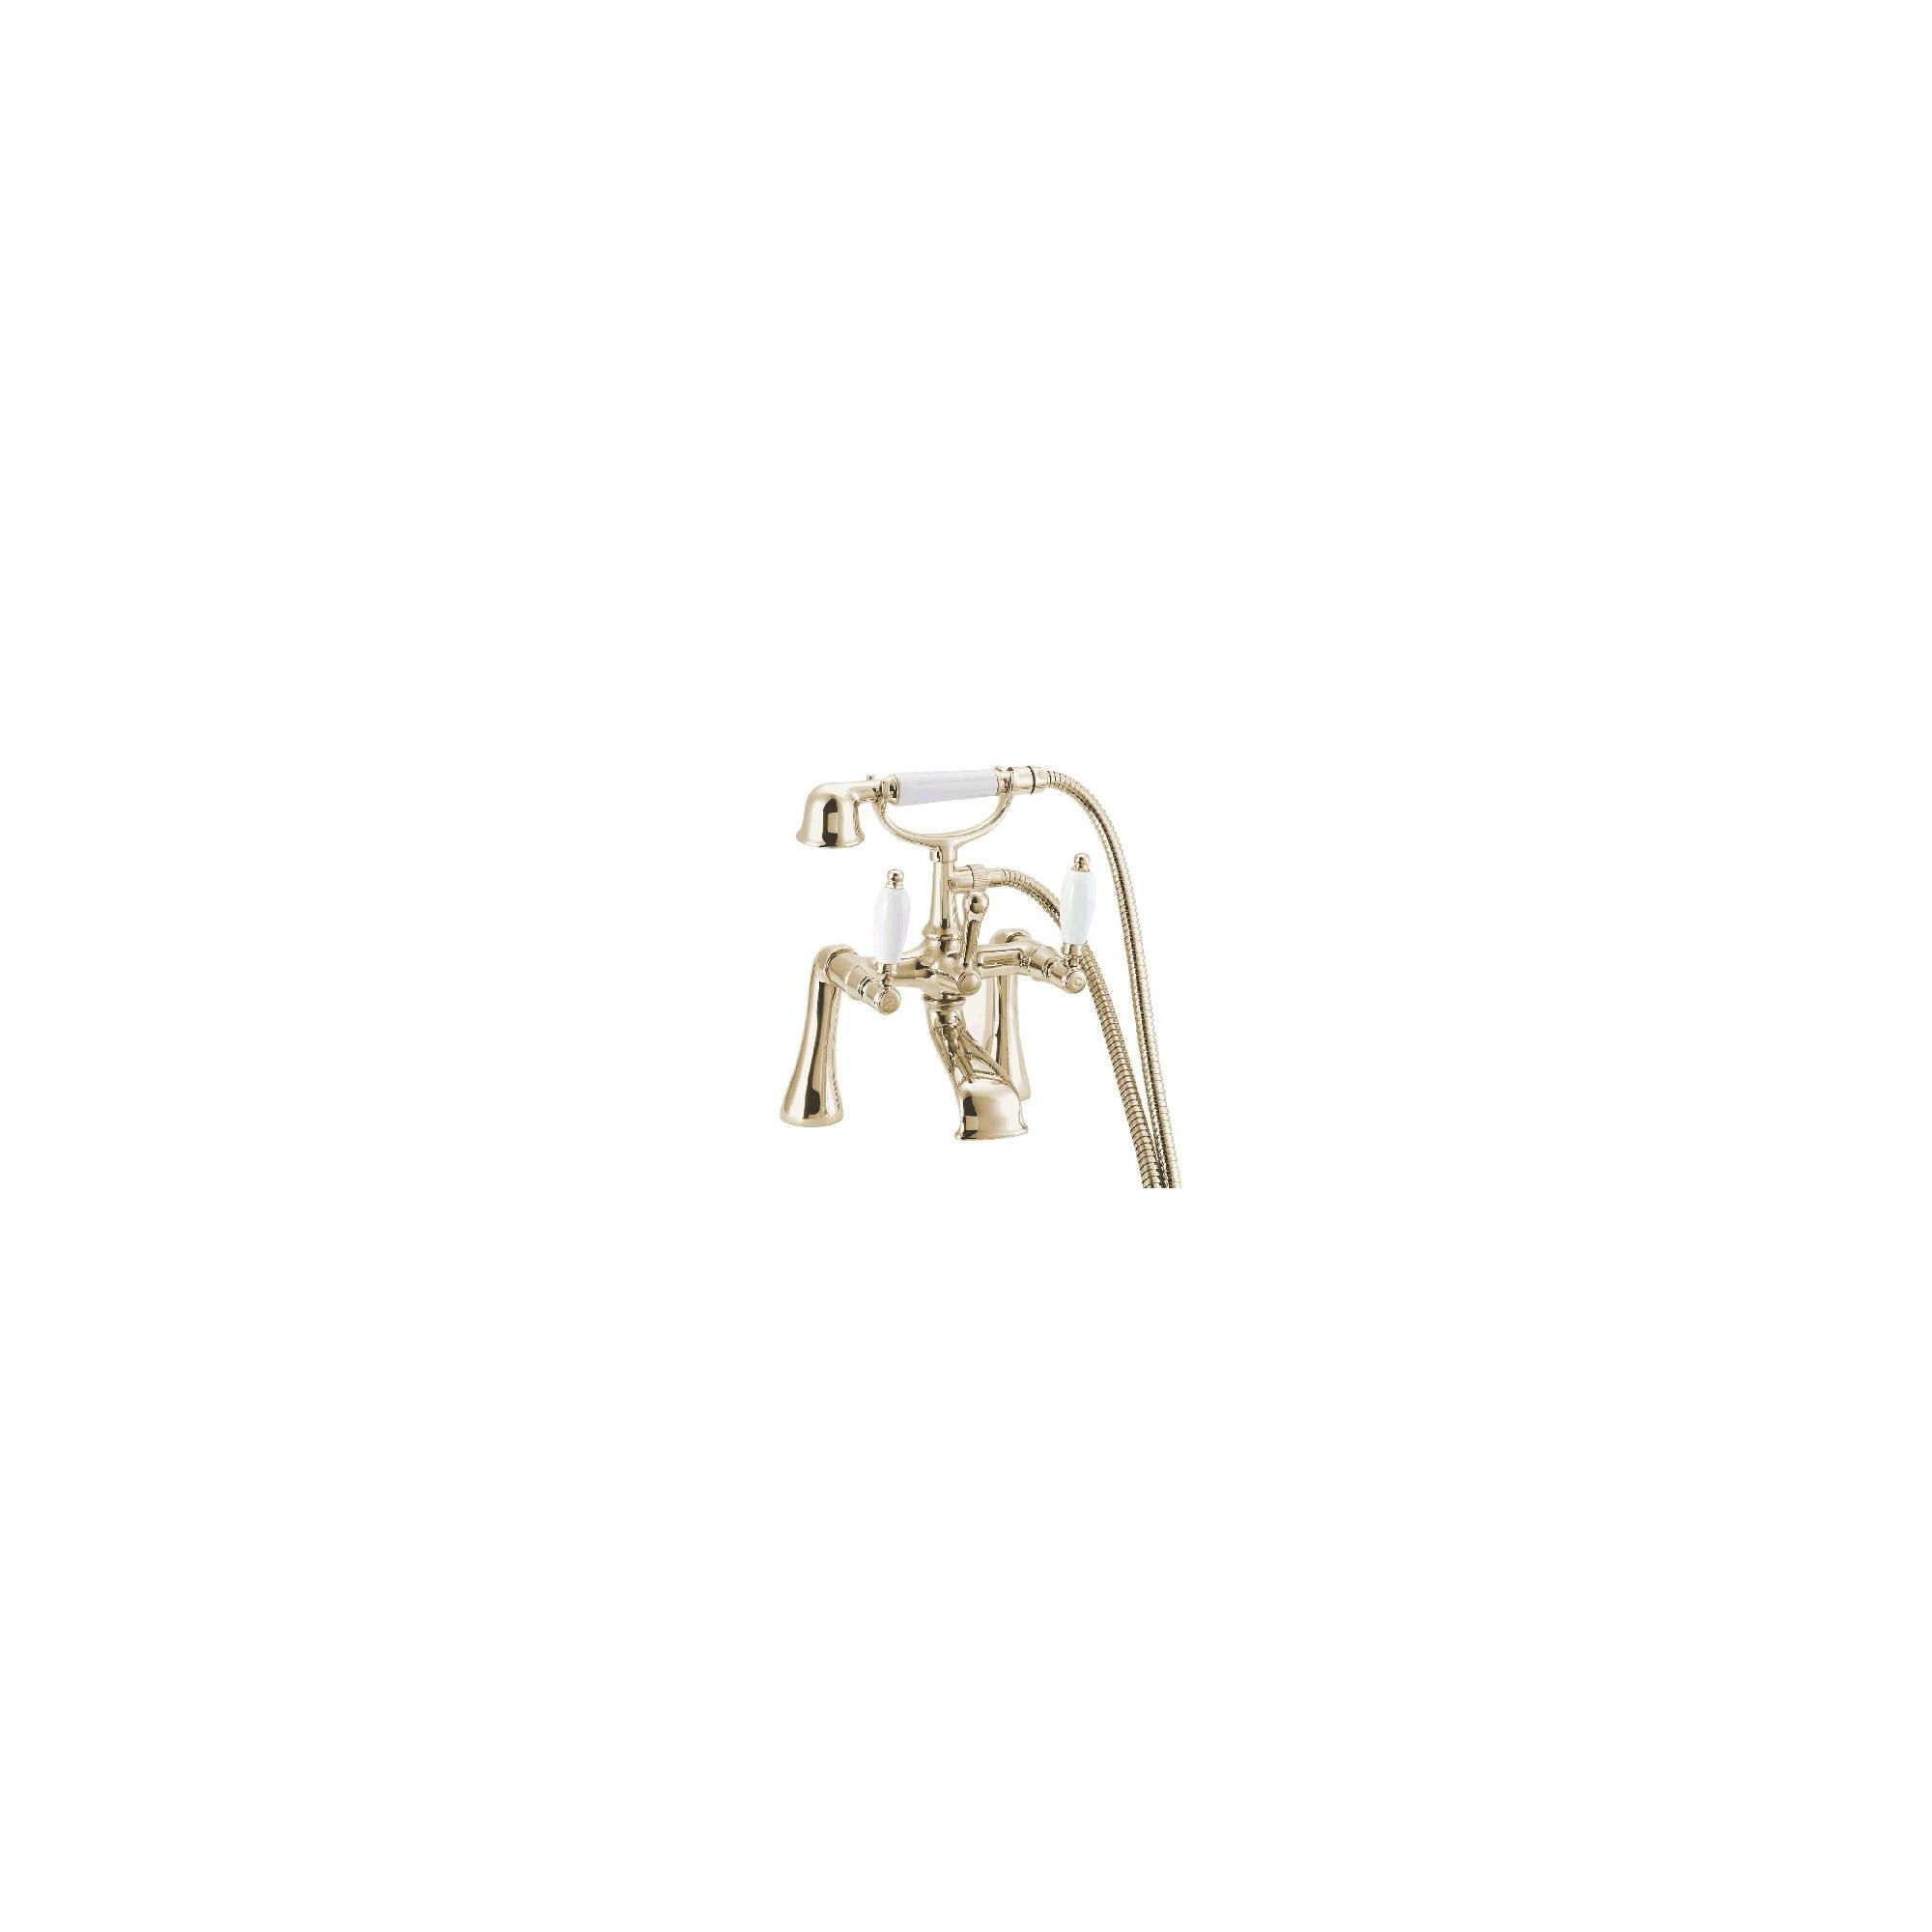 Deva Georgian Pillar Mounted Bath Shower Mixer Tap Gold at Tesco Direct